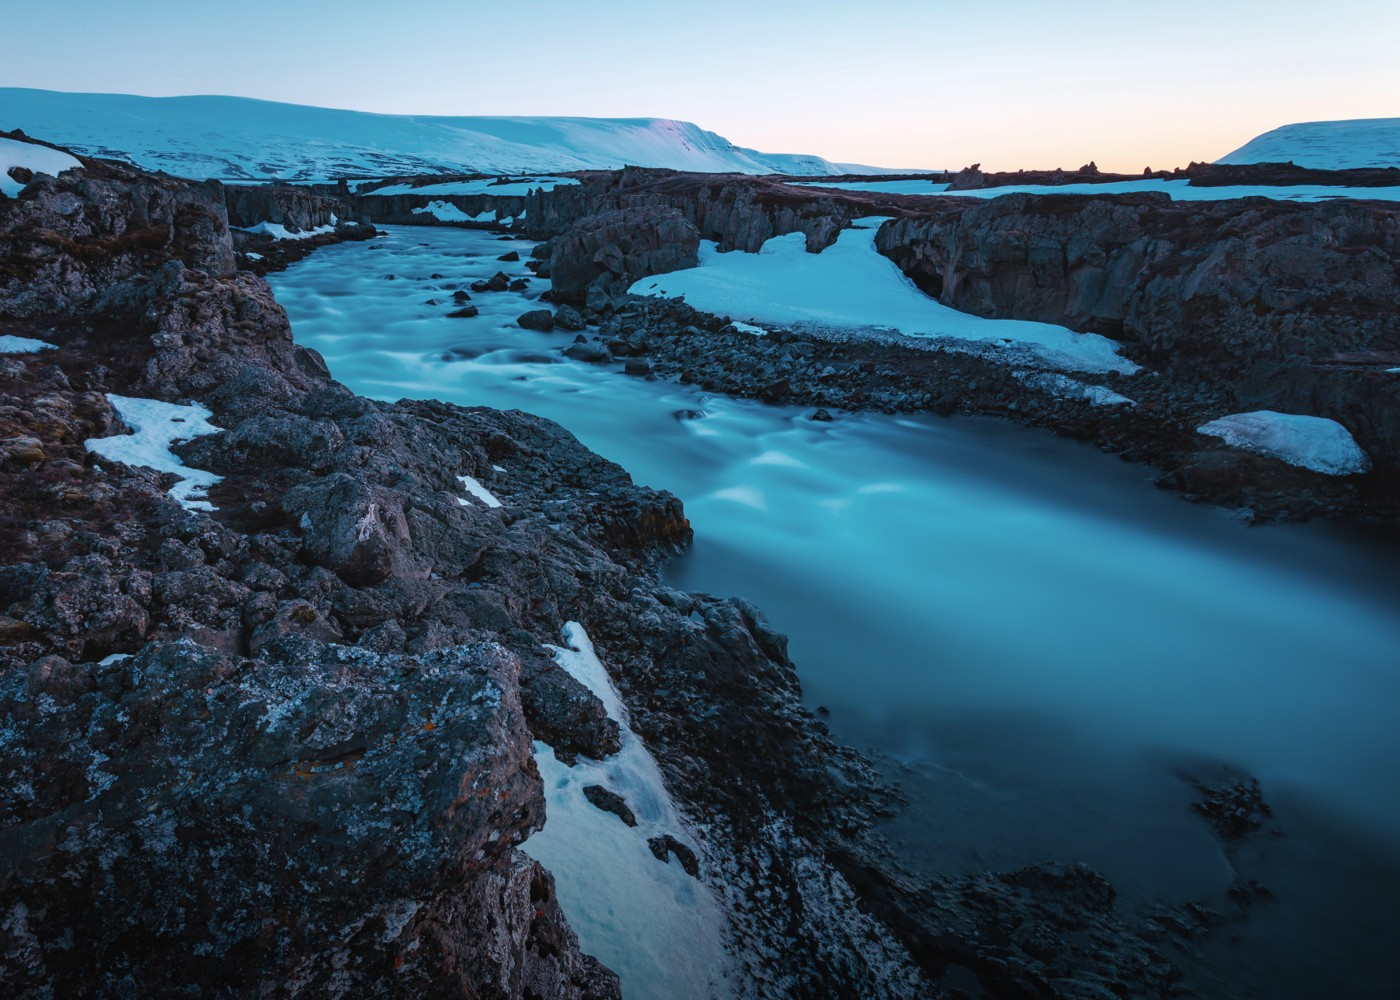 A steaming geothermal river in Iceland flowing through black volcanic rock